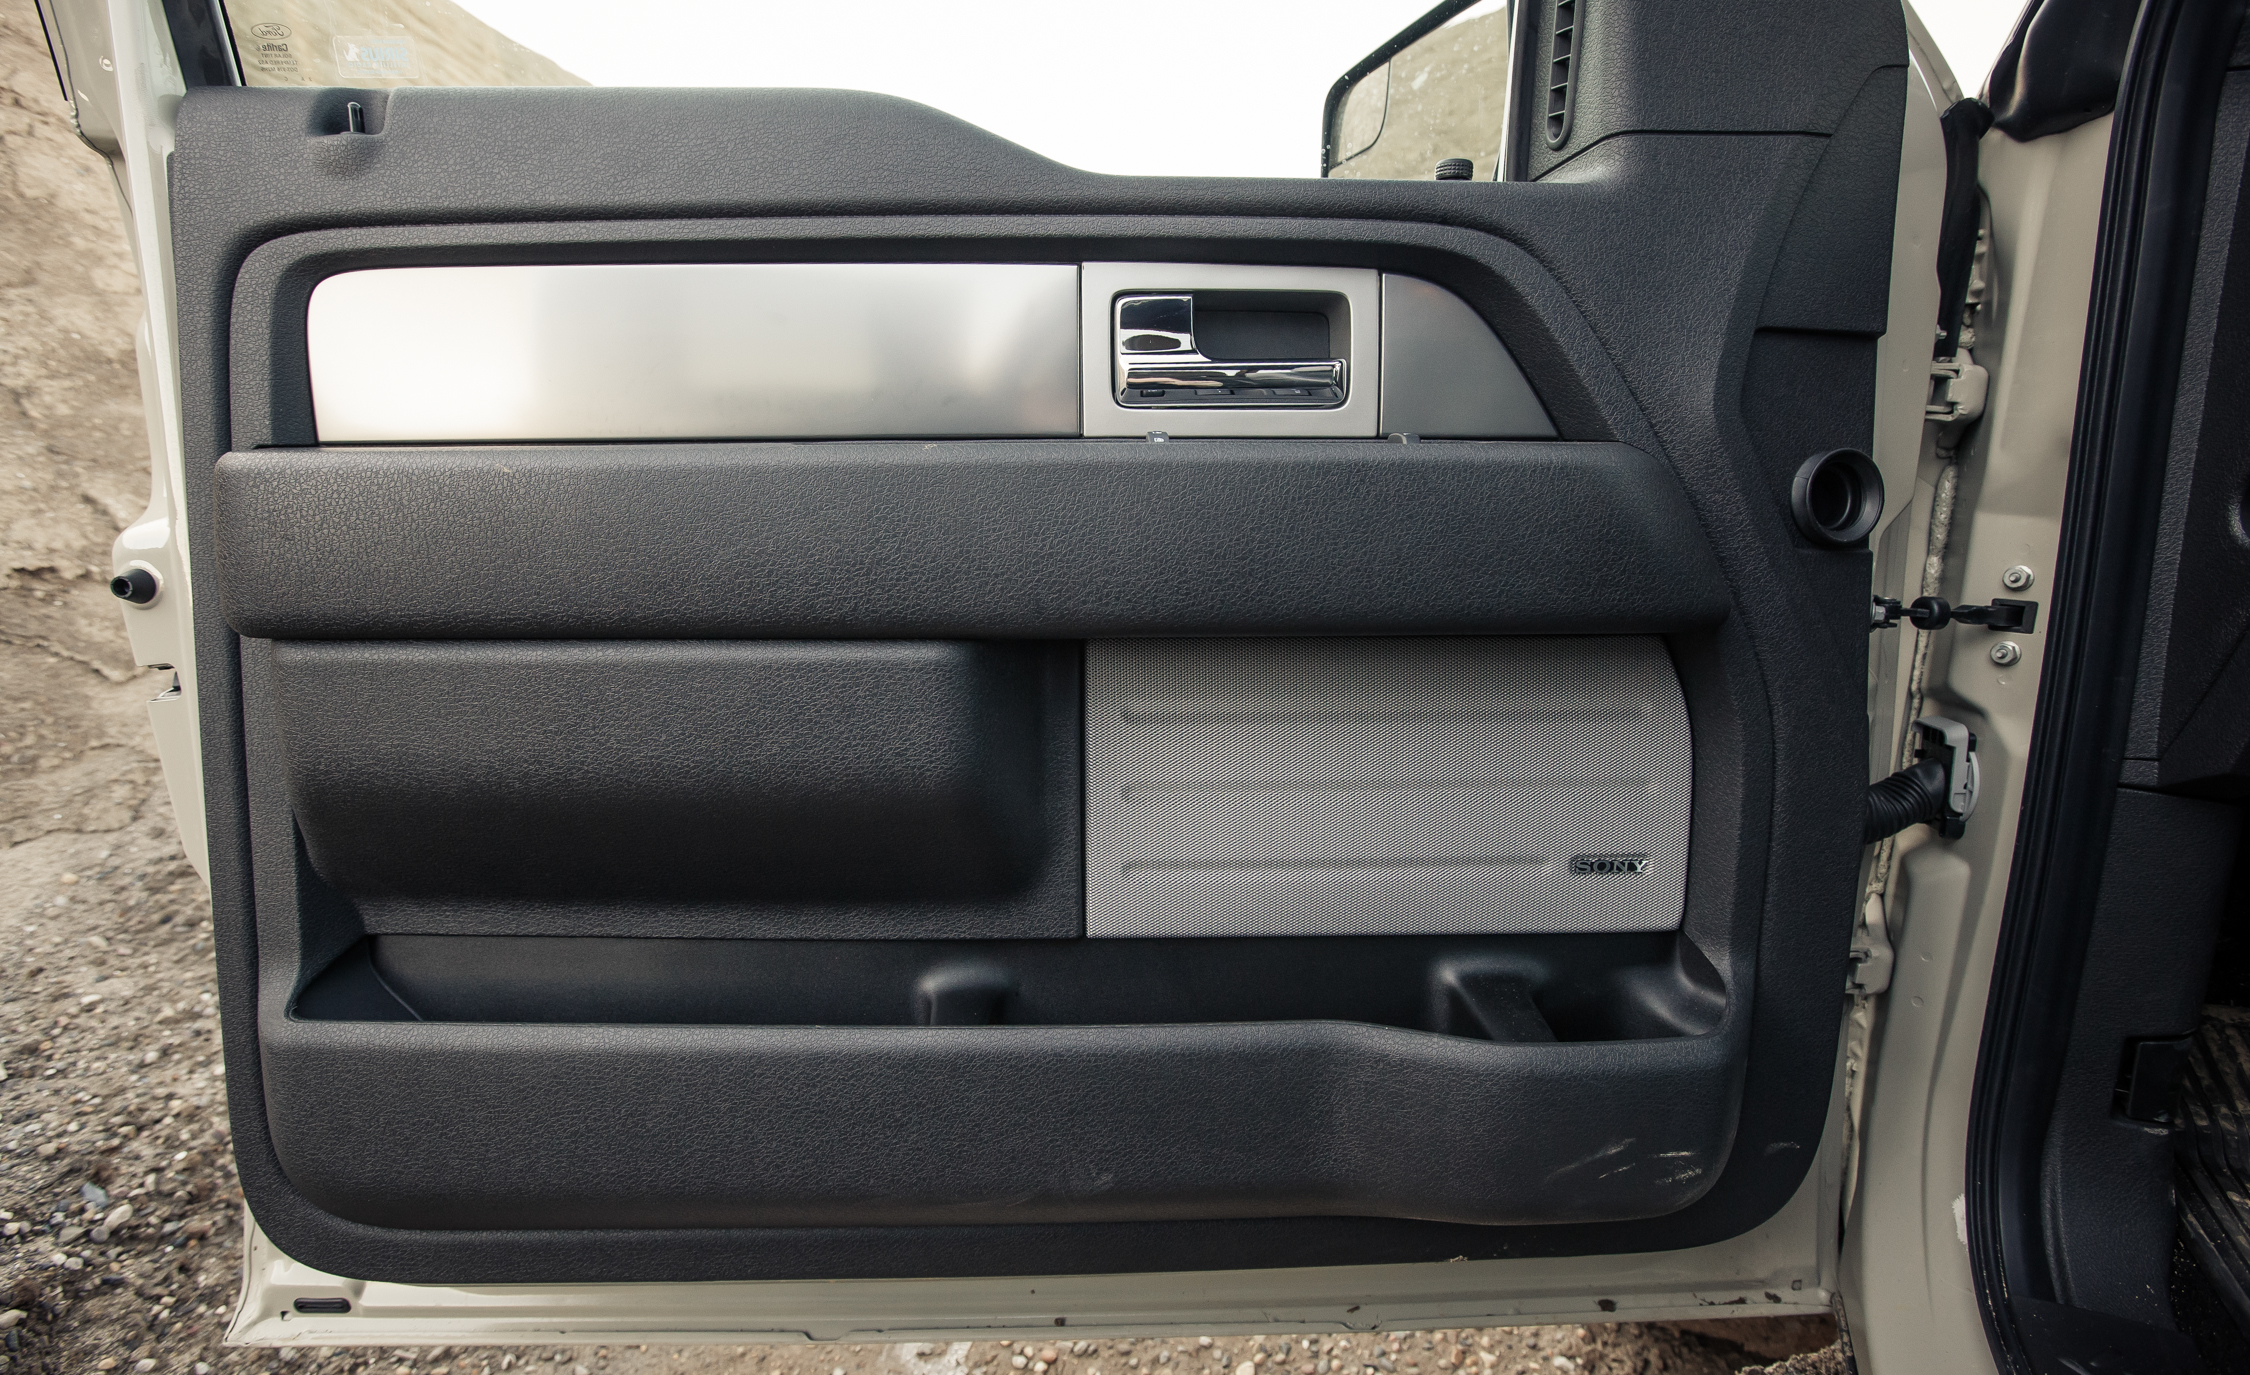 2013 Ford F 150 SVT Raptor SuperCab Interior View Door Panel (Photo 22 of 39)